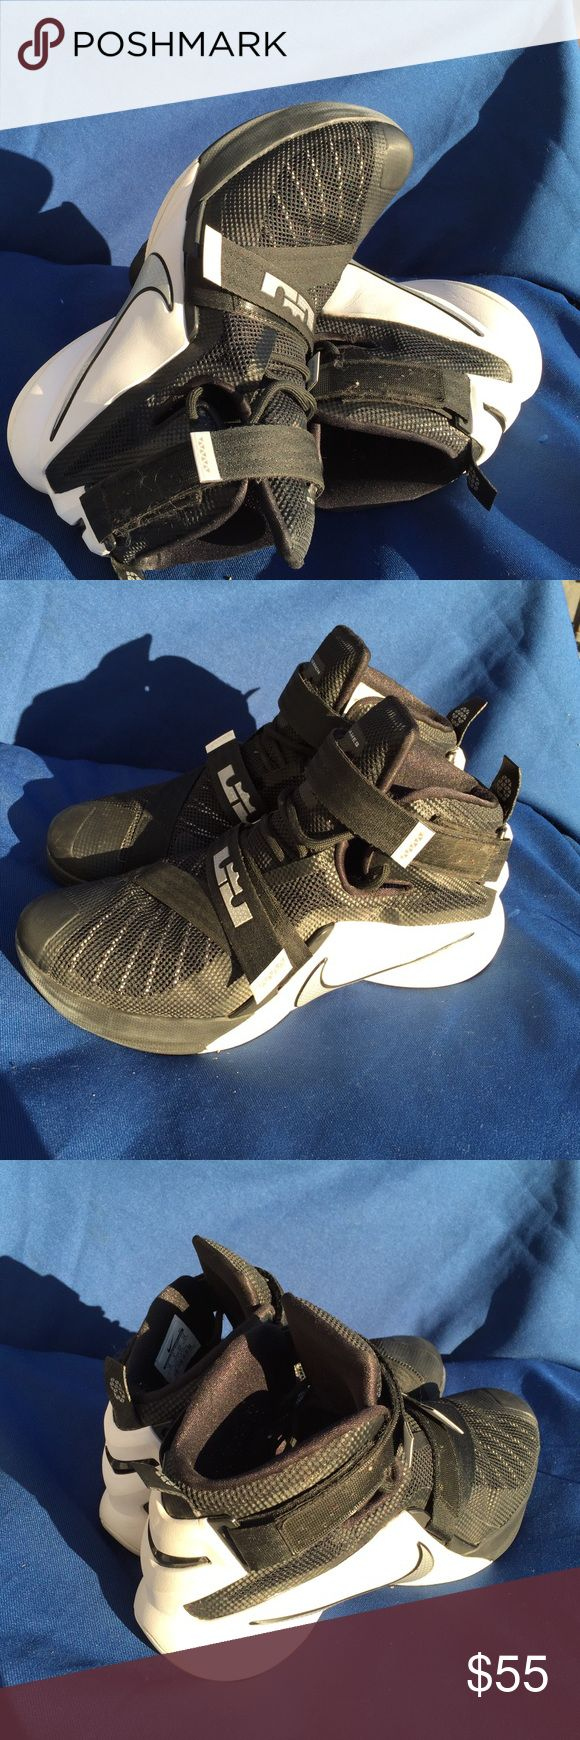 Men's Nike LeBron James lX Zoom soldier size 10 Gently used Nike Shoes Sneakers